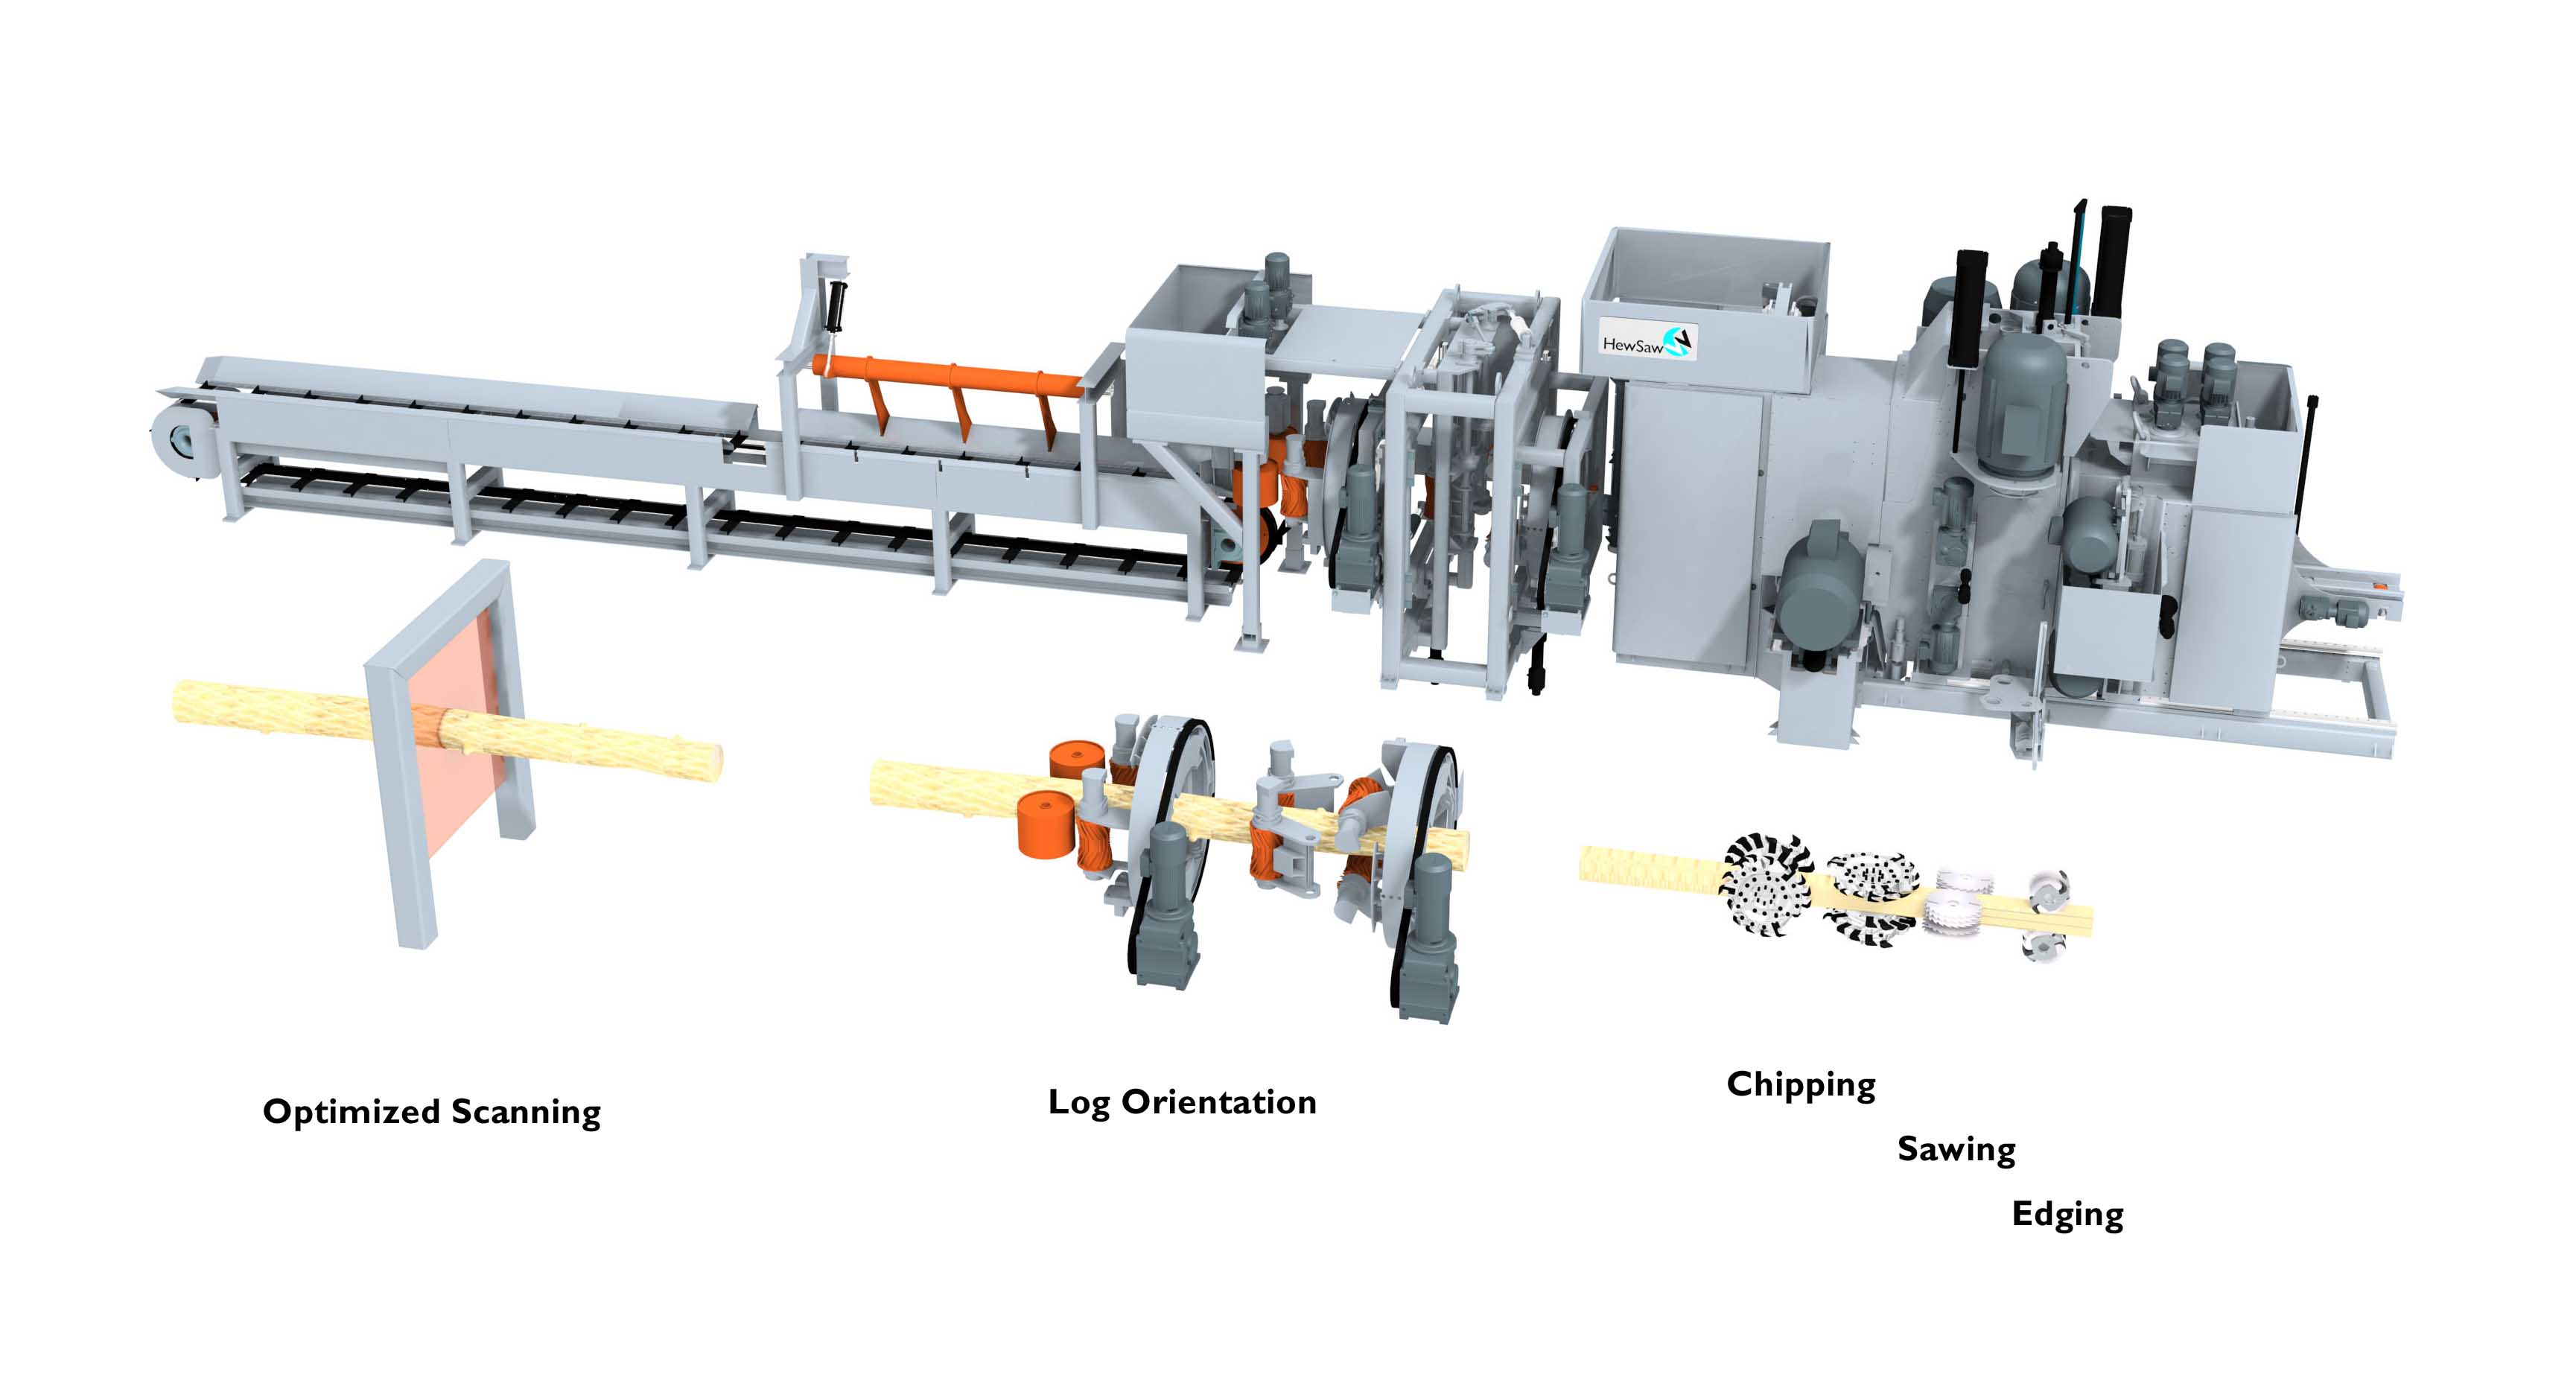 Overview of the HewSaw R200 1.1 saw line